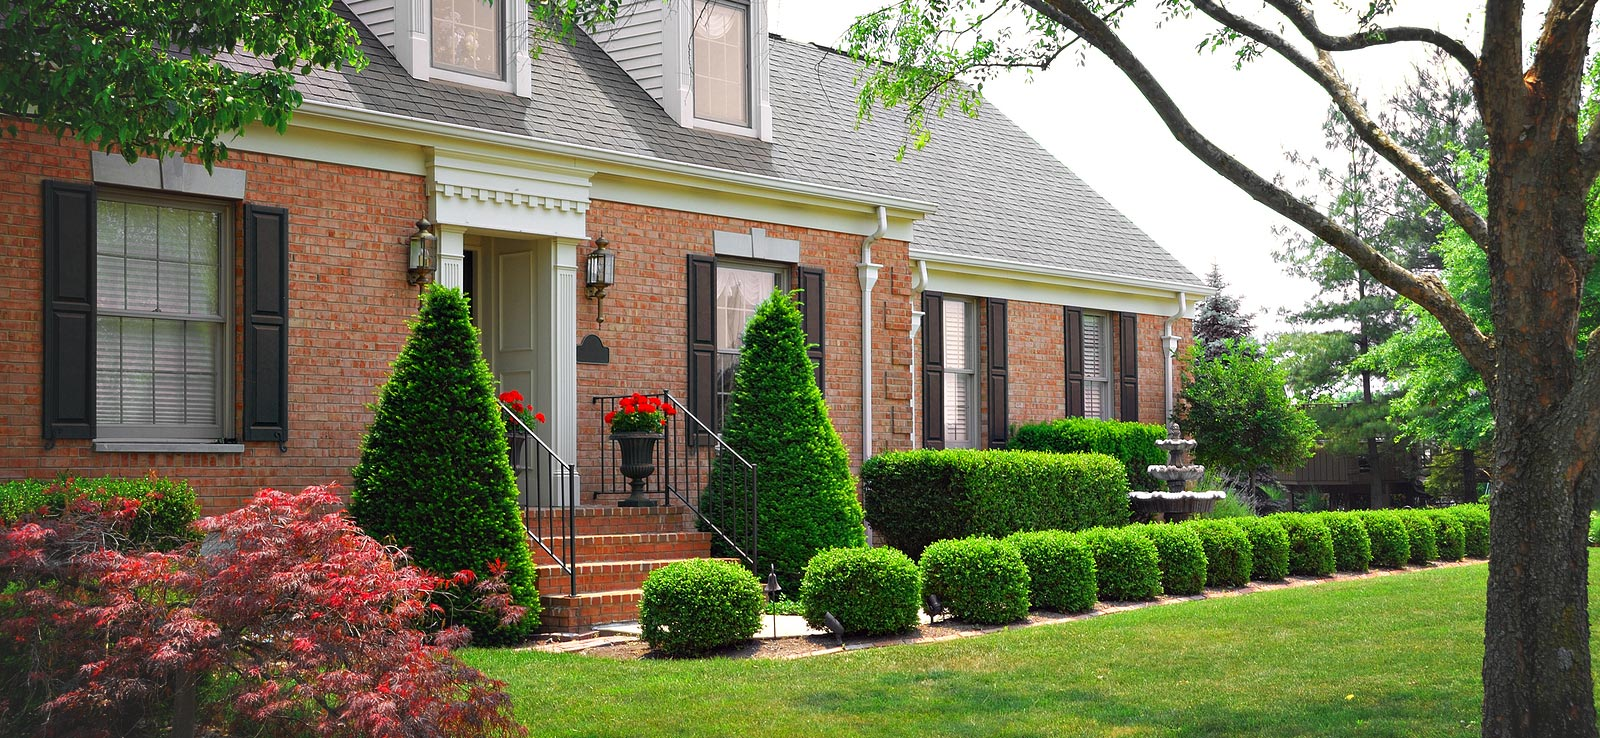 Hampton Roads Virginia Real Estate and Homes for Sale